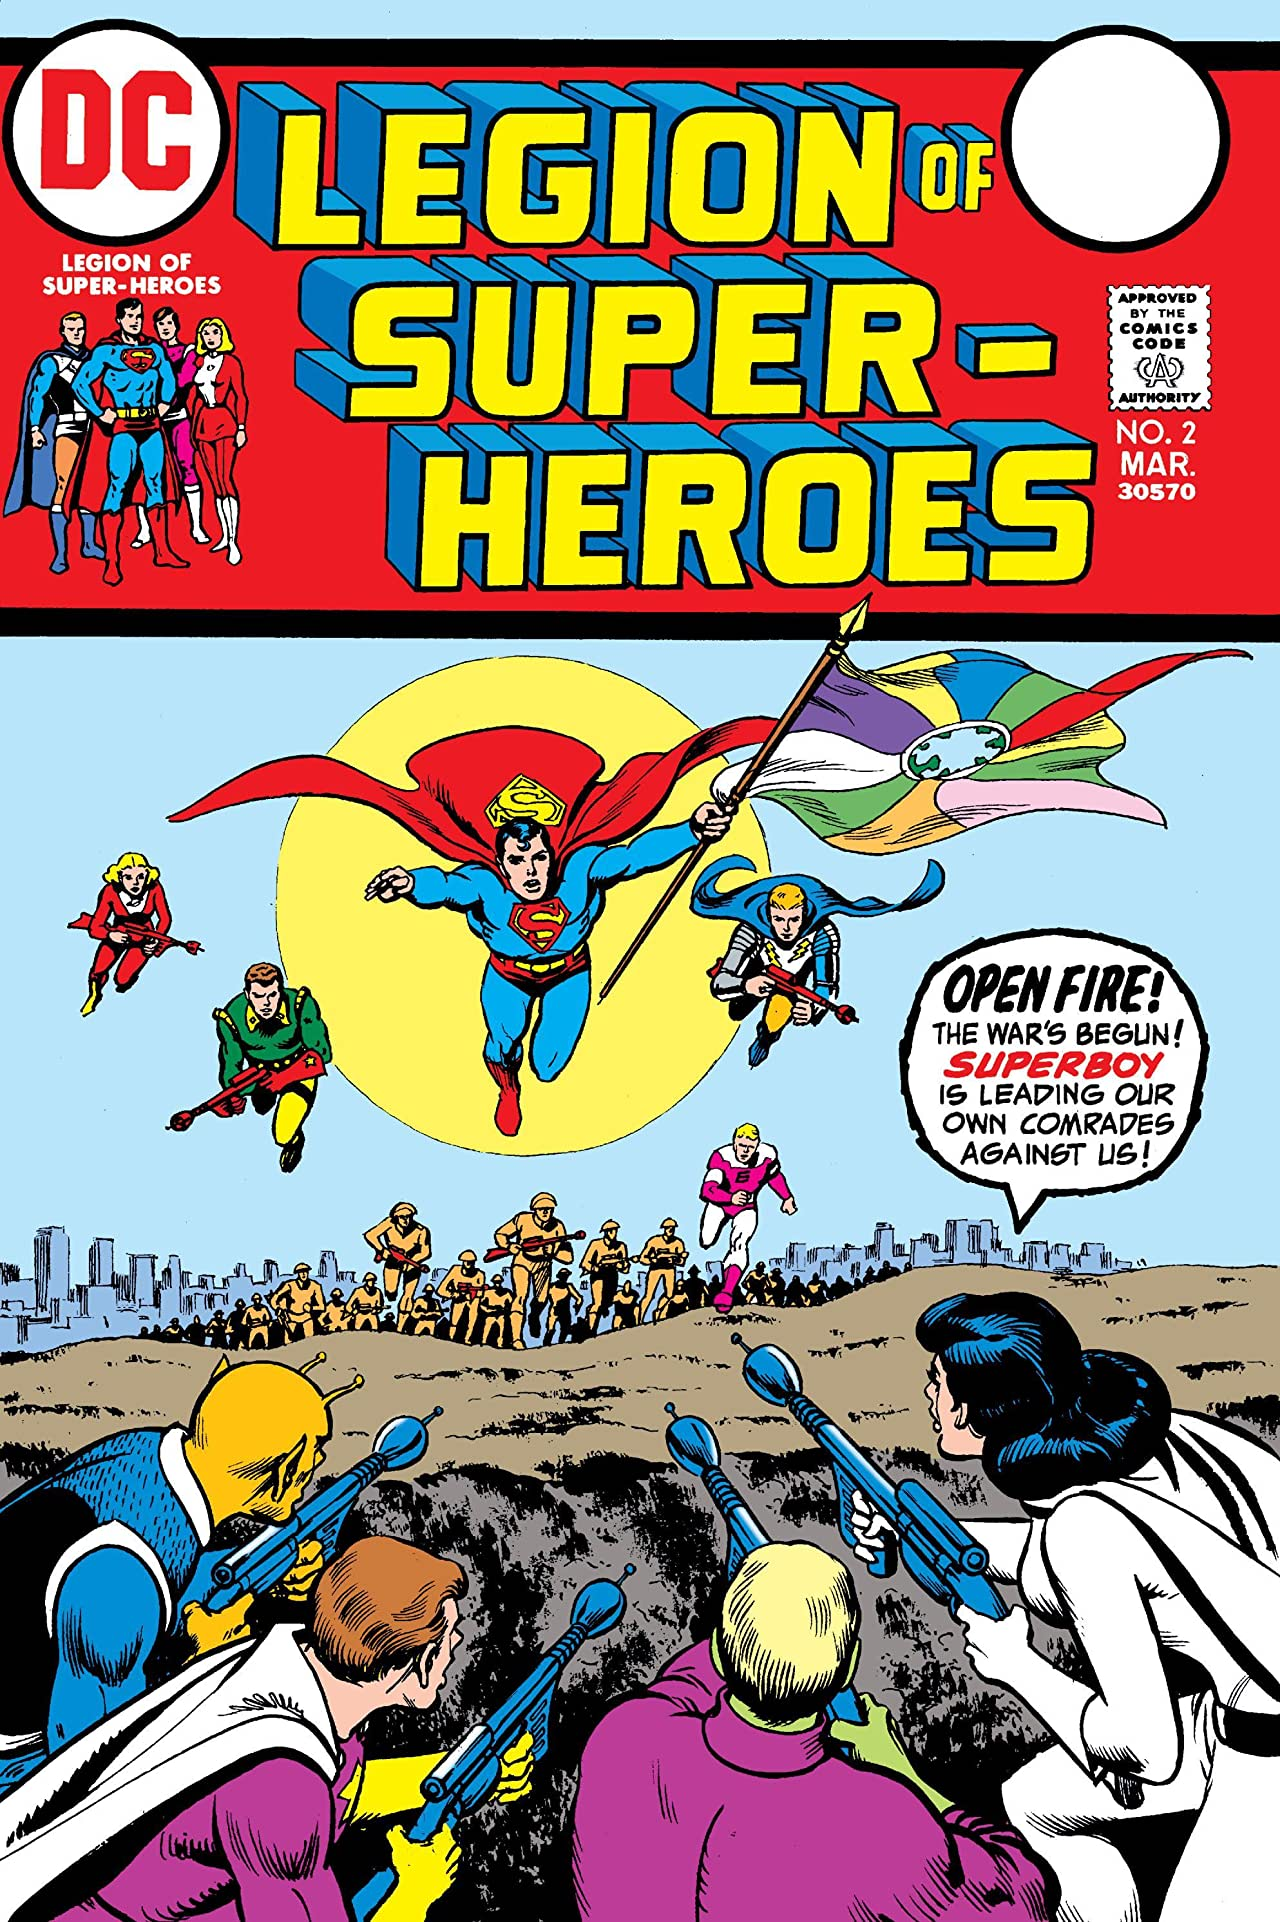 Legion of Super-Heroes (1973) #2